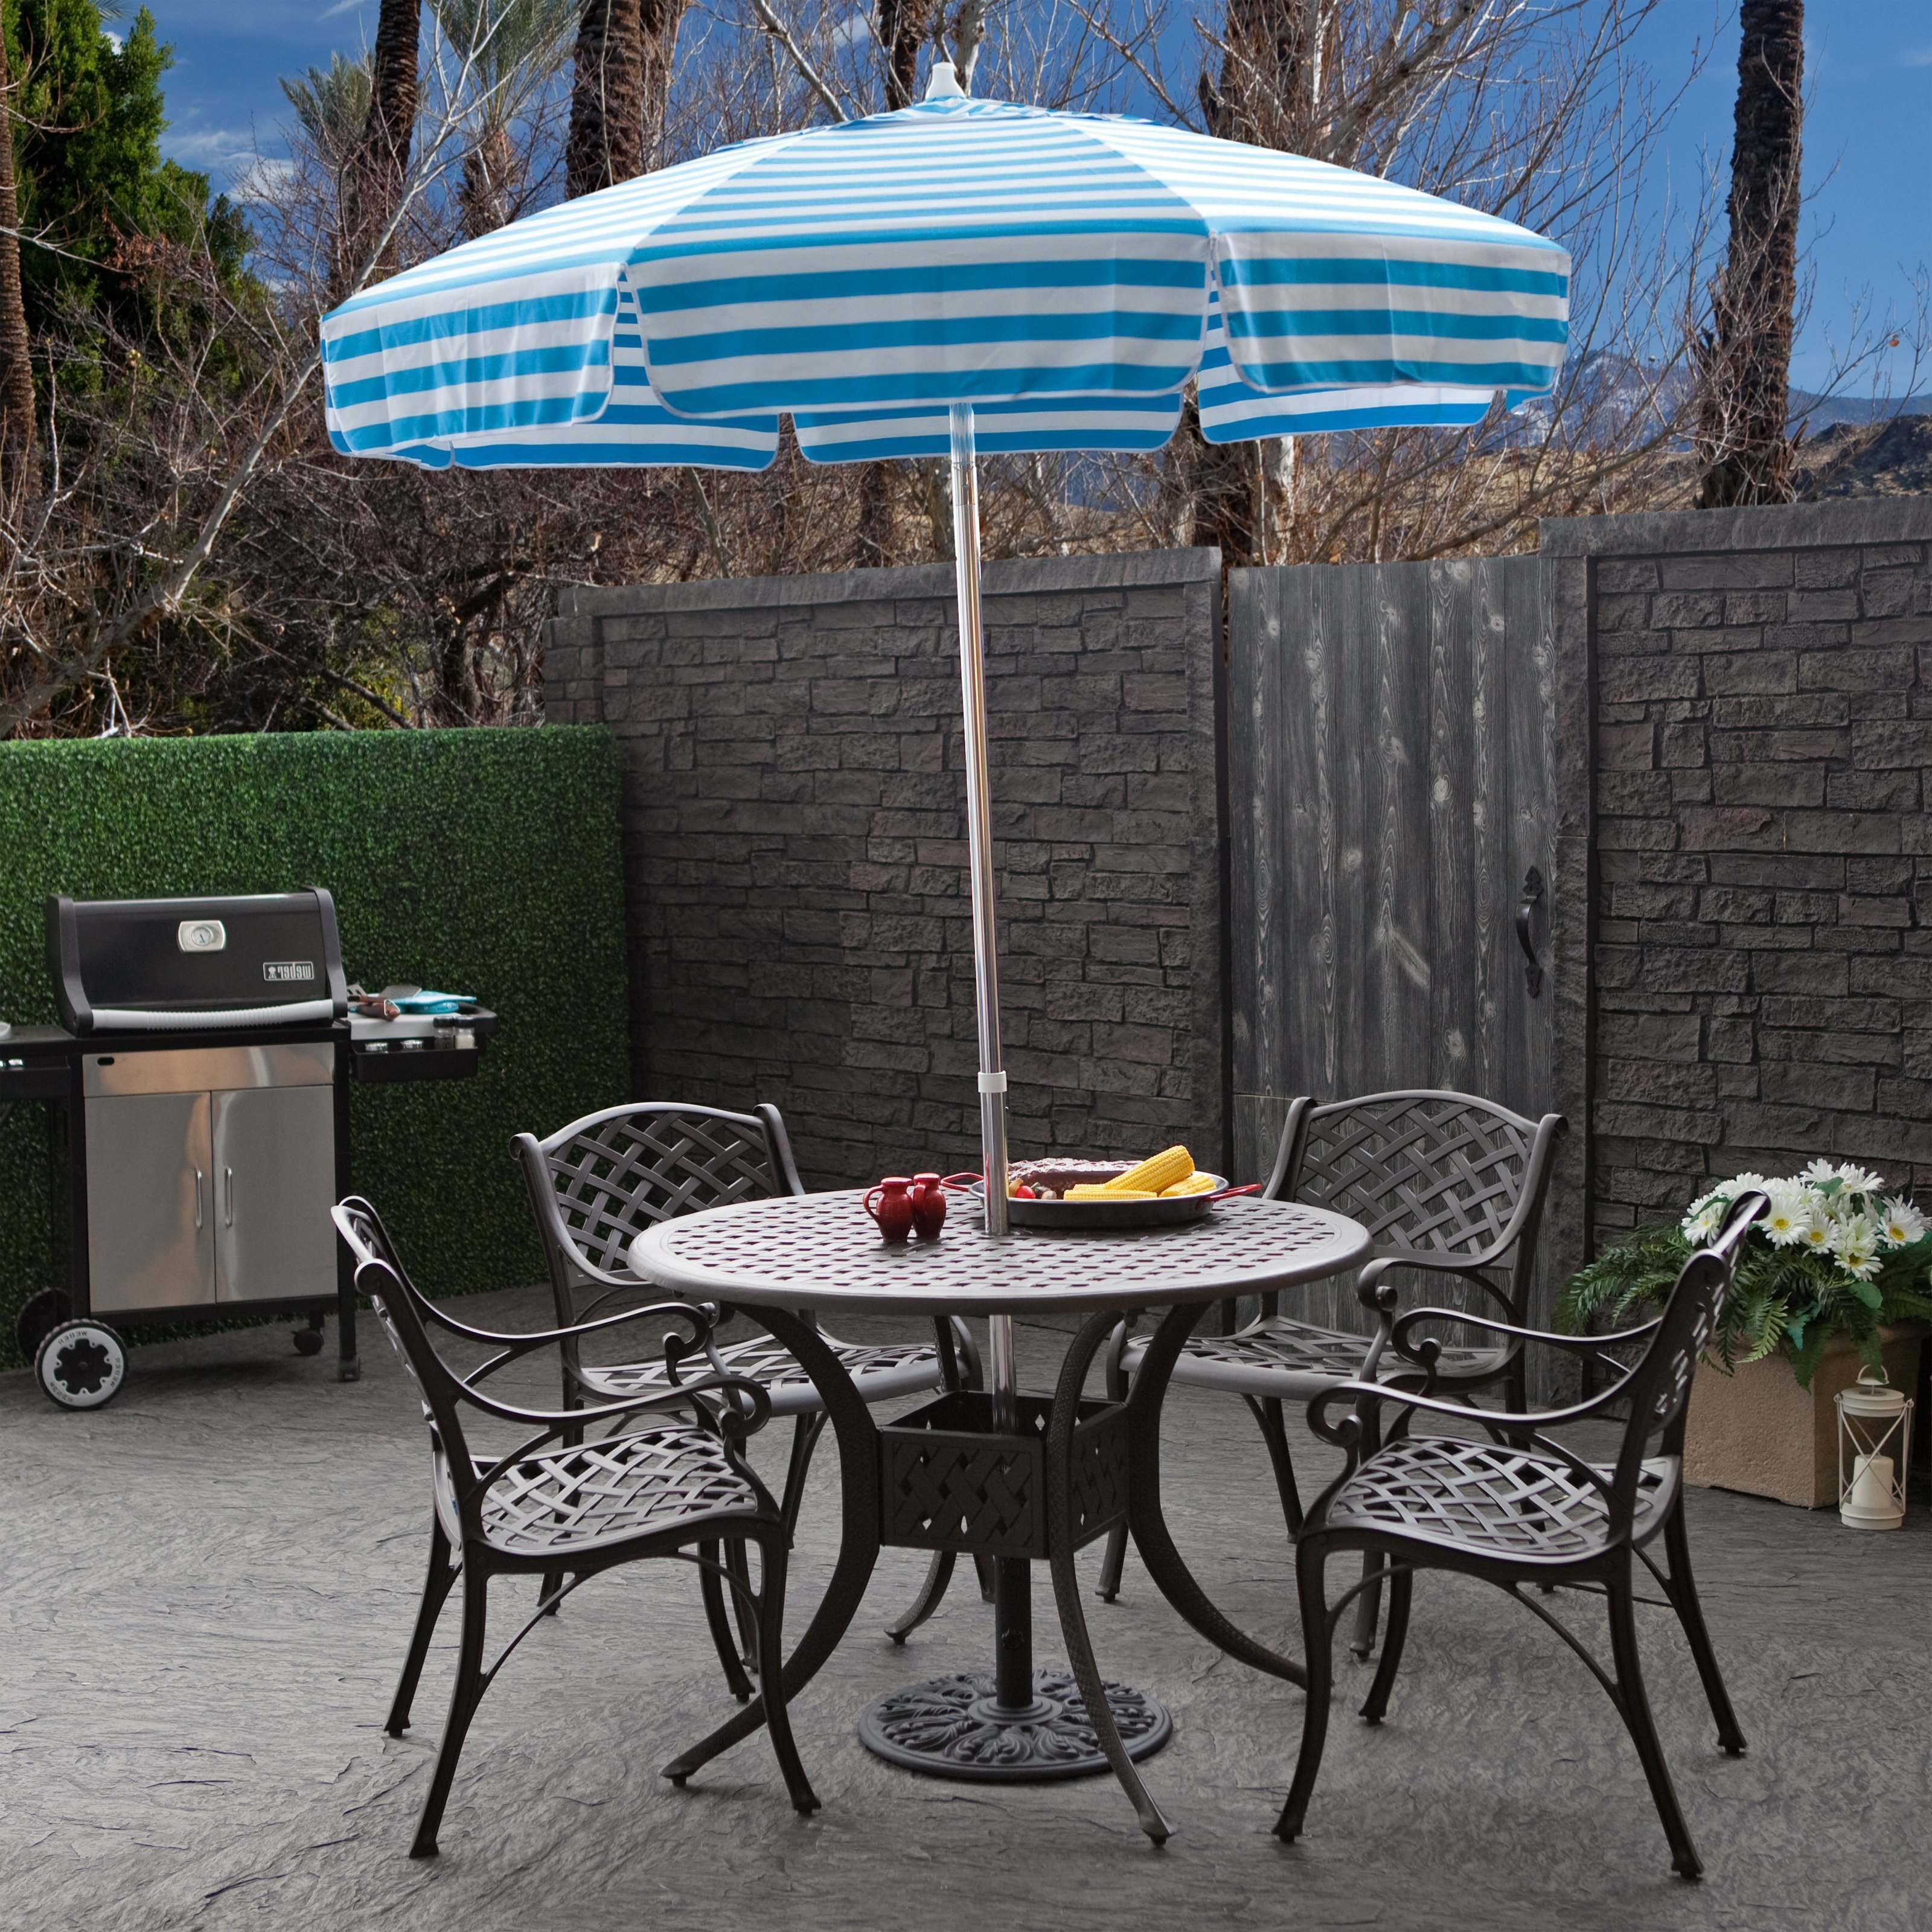 Most Popular Incredible Patio Table Umbrellas Destinationgear 6 Ft Aluminum In Small Patio Tables With Umbrellas Hole (View 10 of 20)